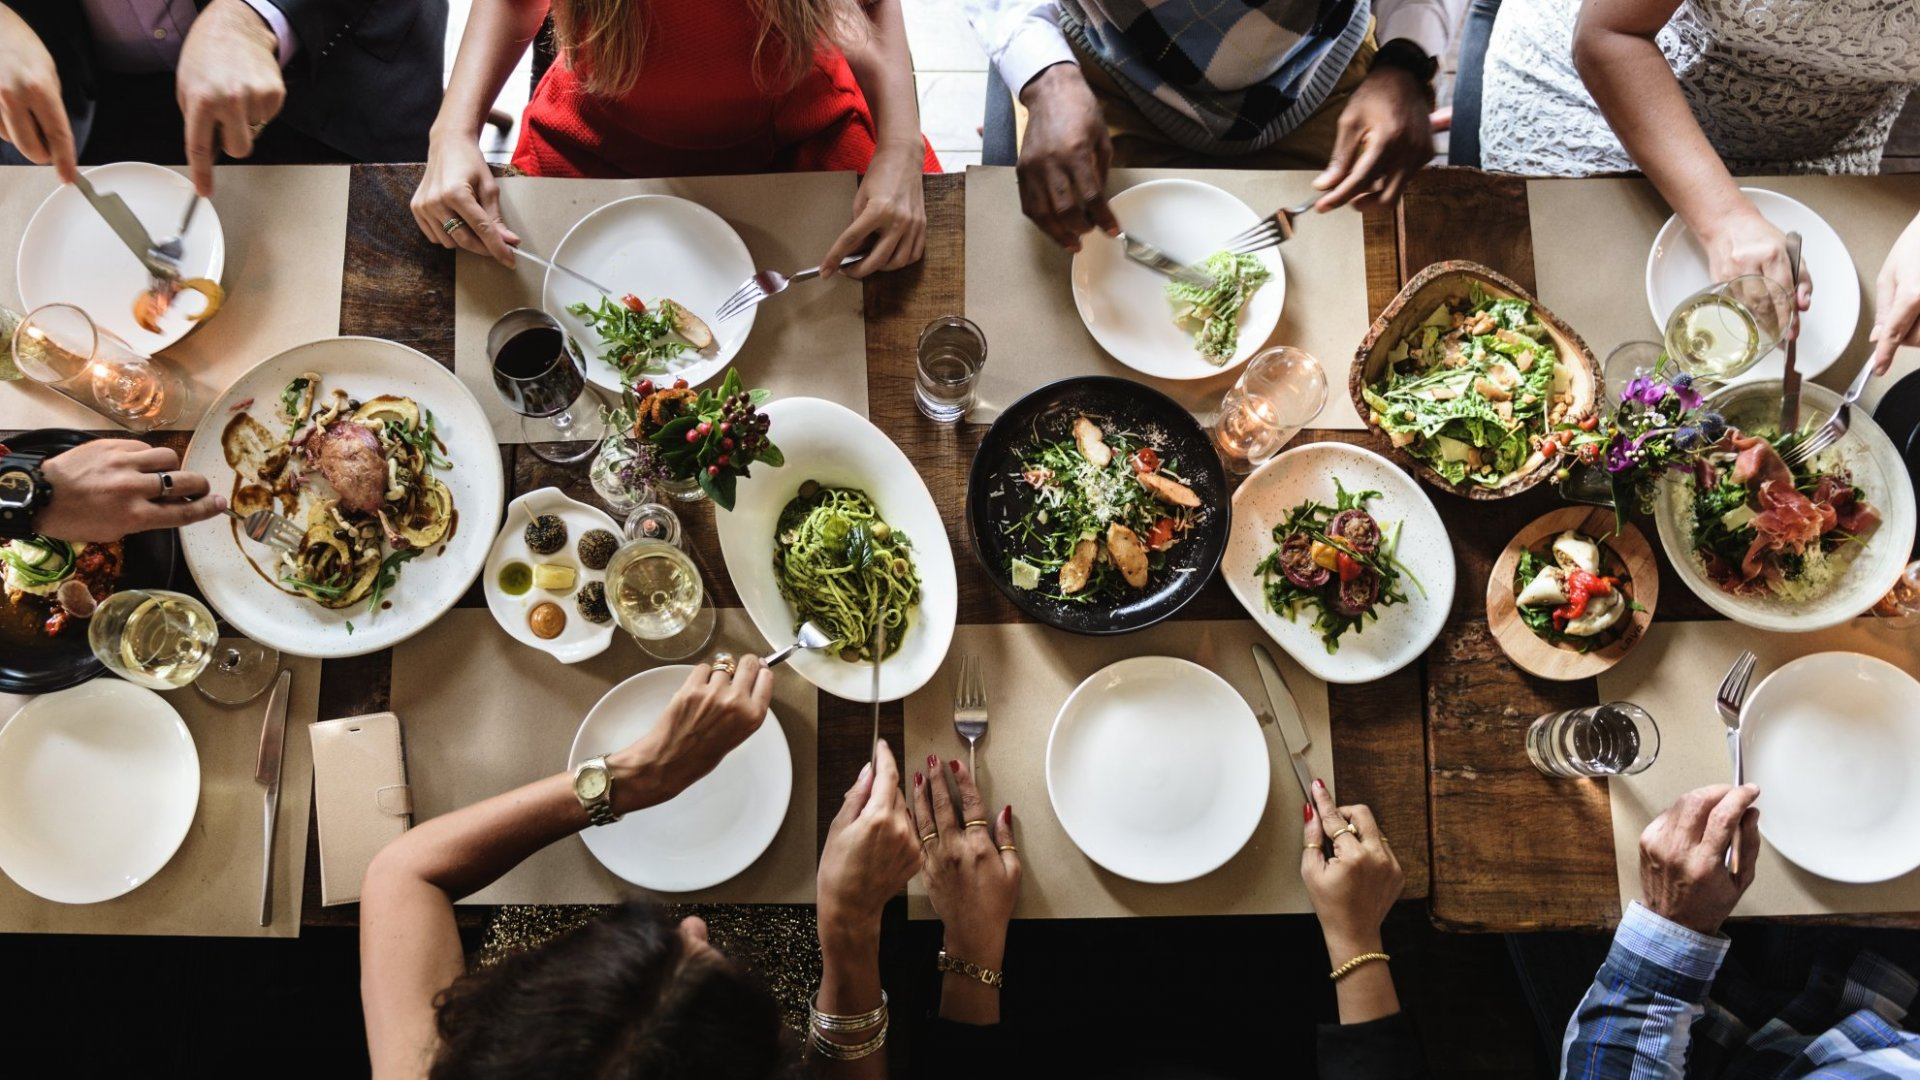 Bringing Empathy to Business Could Be as Simple as Sharing Dinner